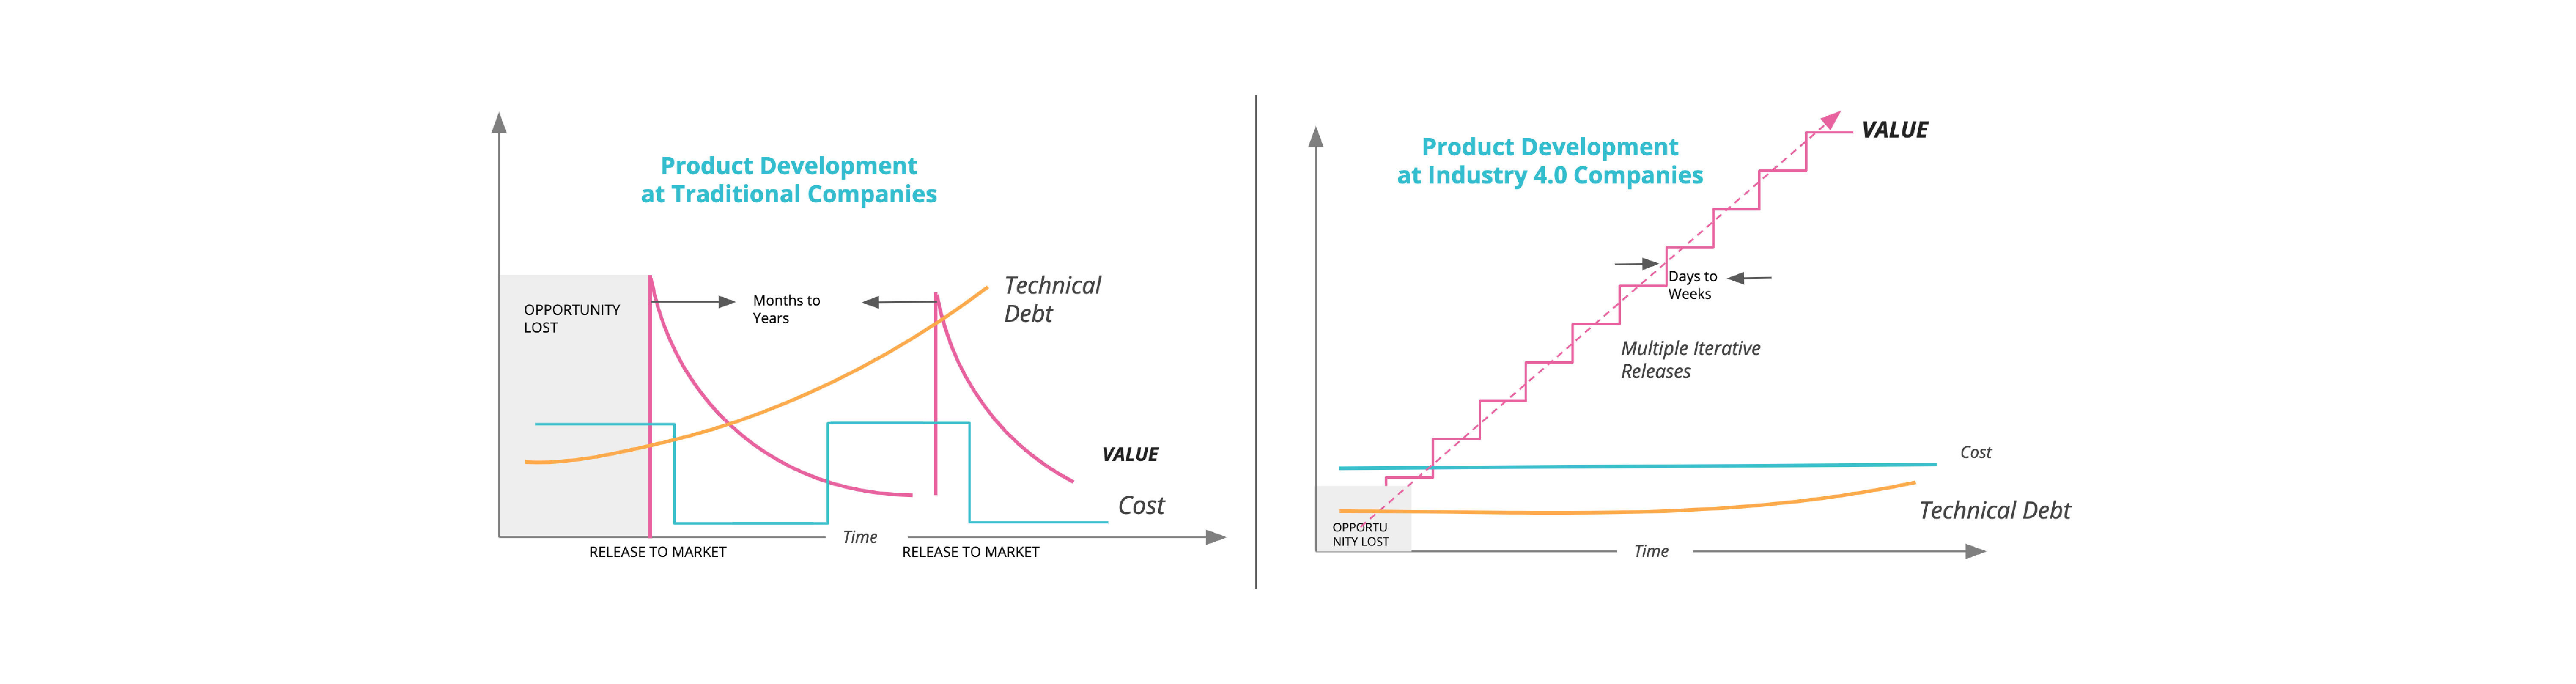 Products built in a traditional business environment vs. in a modern digital business